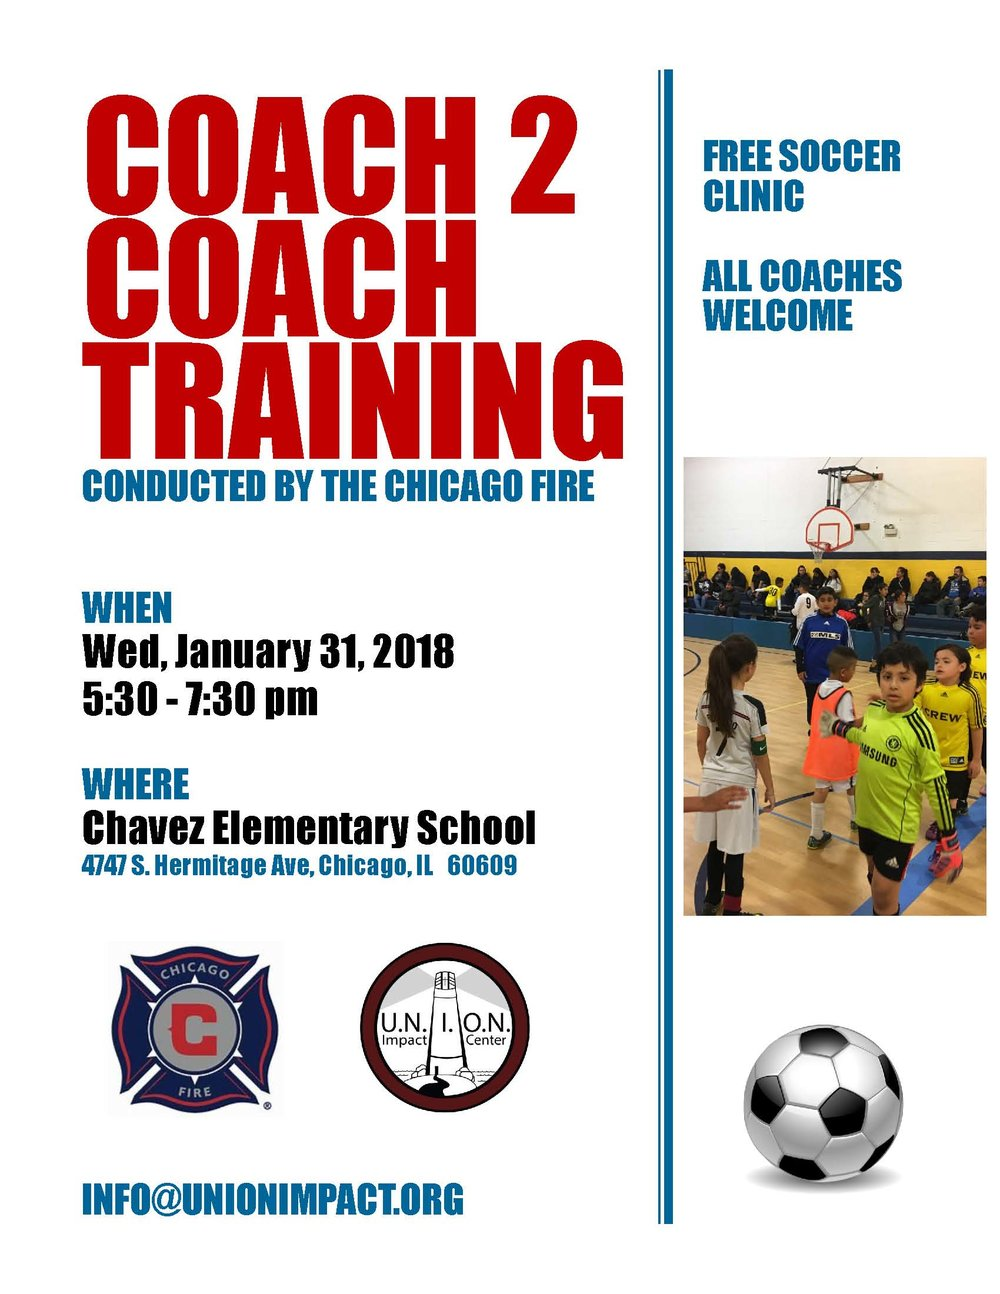 Coach Training Chicago Fire 1.31.18 - Draft 2.jpg